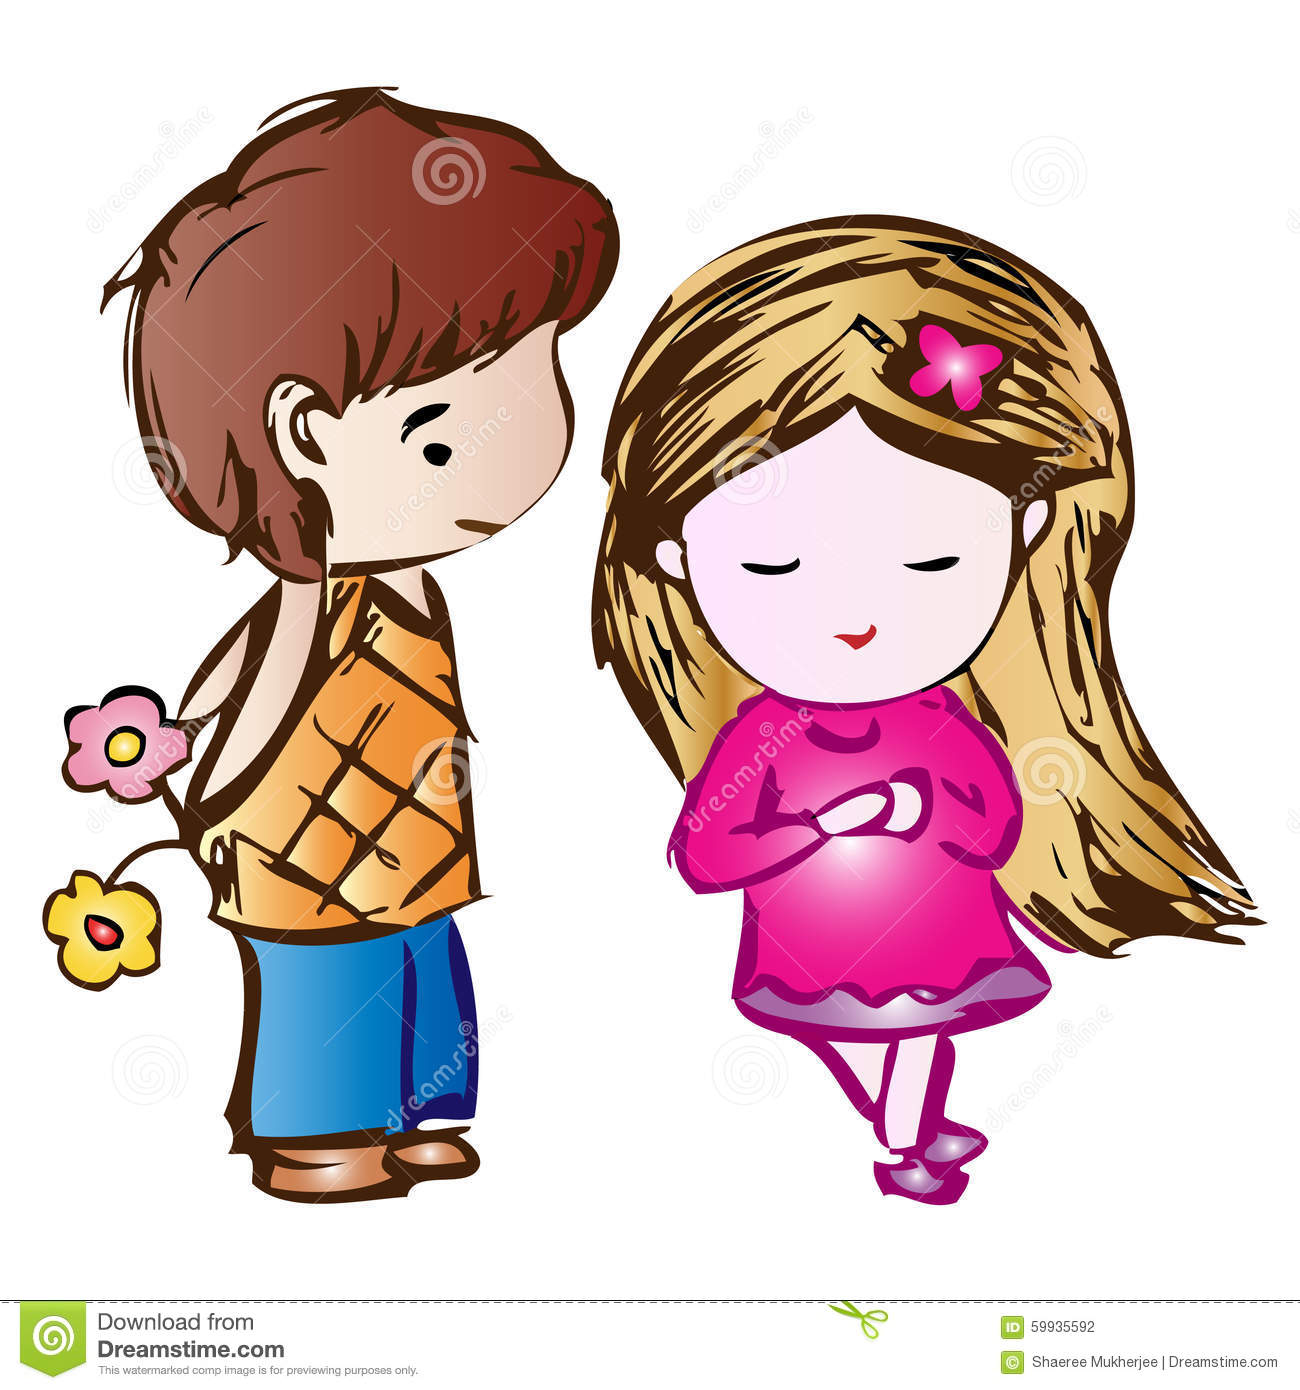 Must see Love Couple Cartoon HD Wallpaper Download - cute-cartoon-couple-boy-girl-59935592  Graphic_624334.jpg